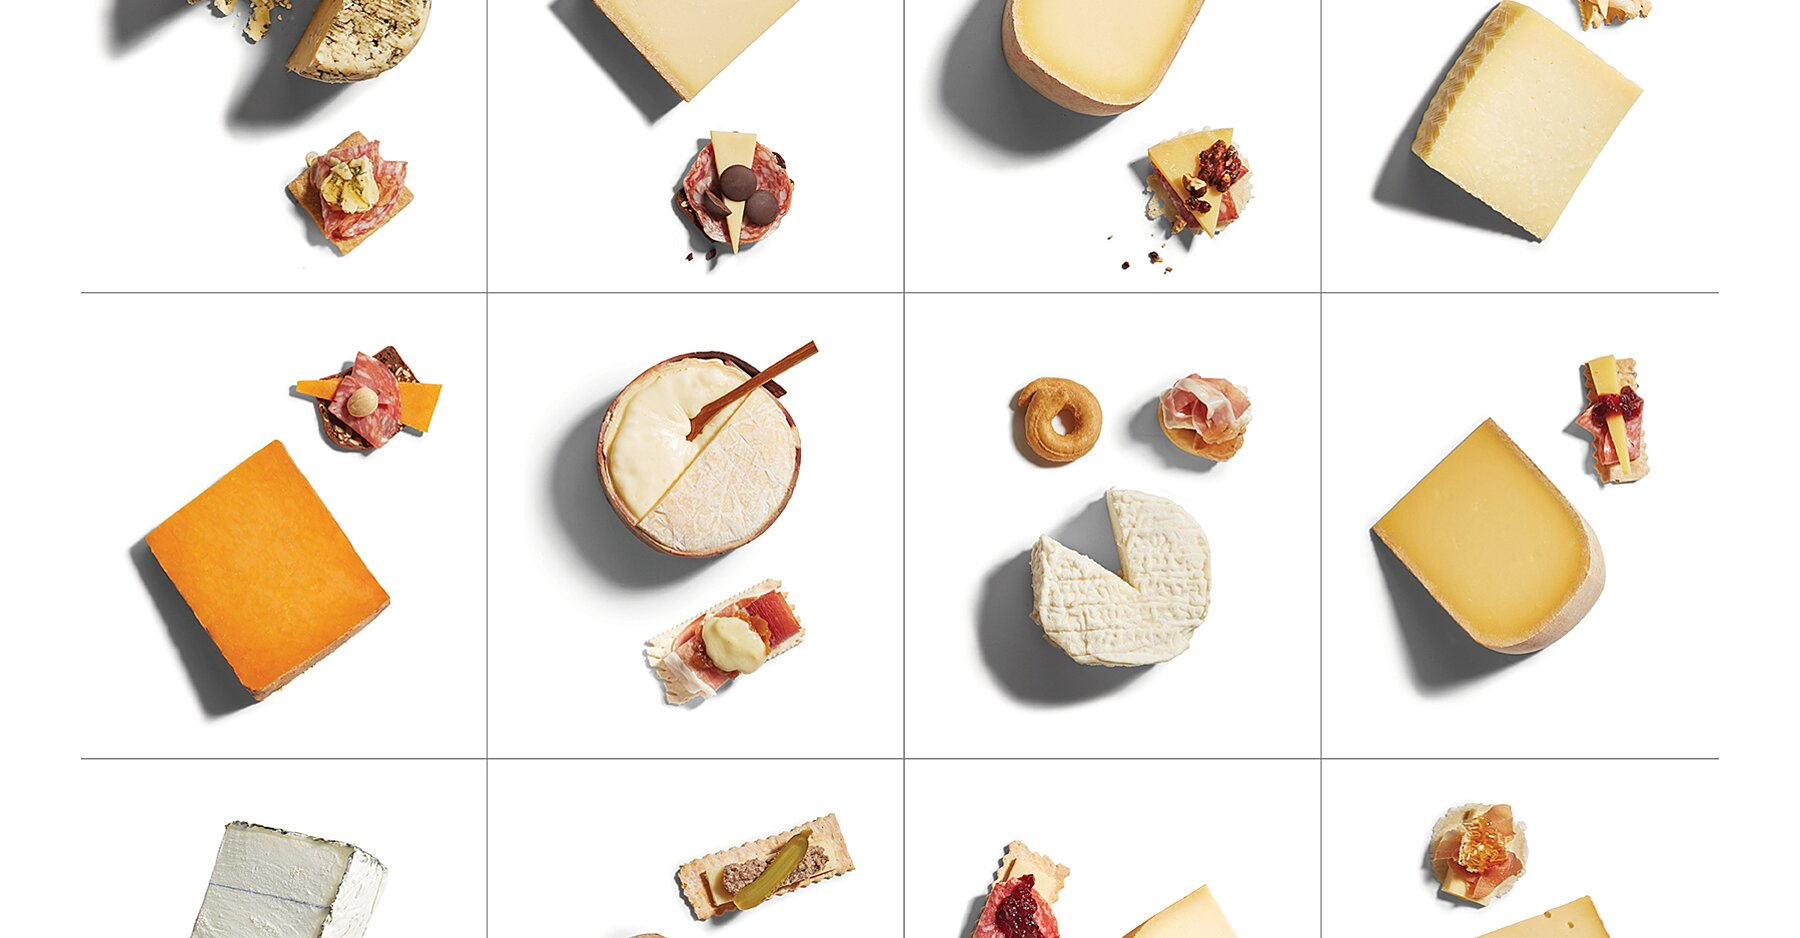 Whole Foods' 12 Days of Cheese Sale Is Back—Here's Your Daily Rundown